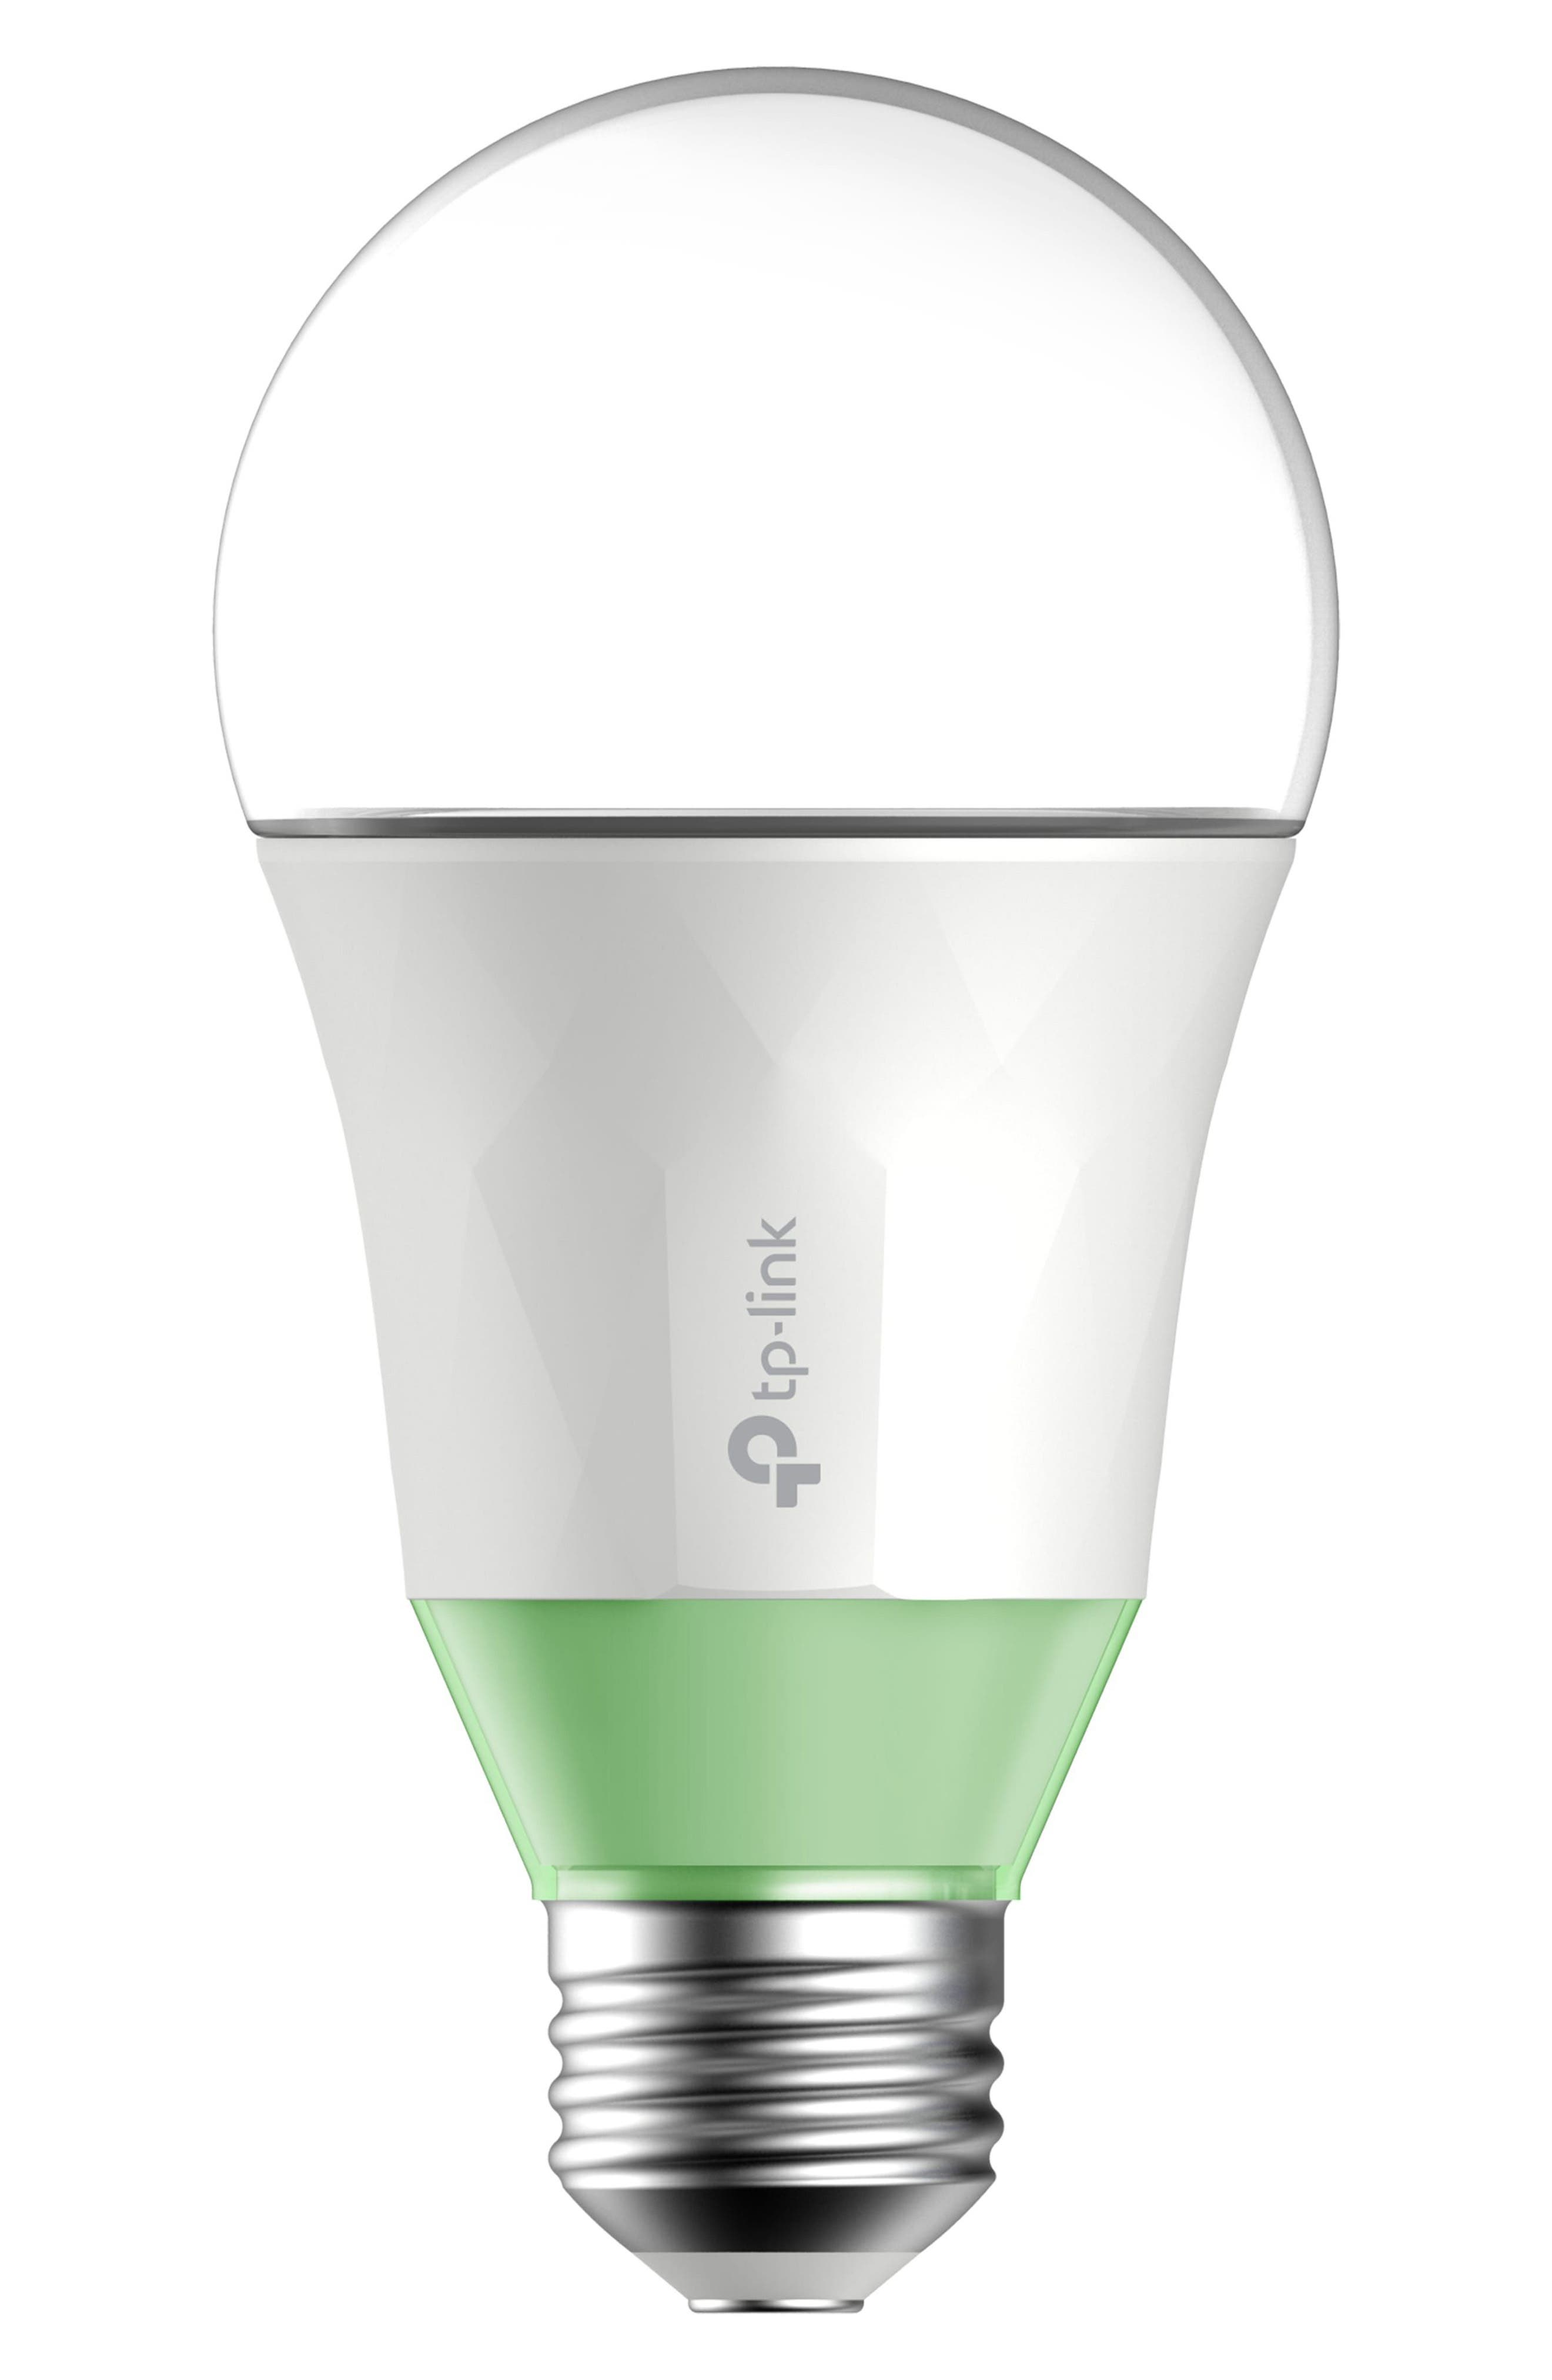 Alternate Image 1 Selected - TP-Link Smart Wi-Fi Dimmable LED Light Bulb